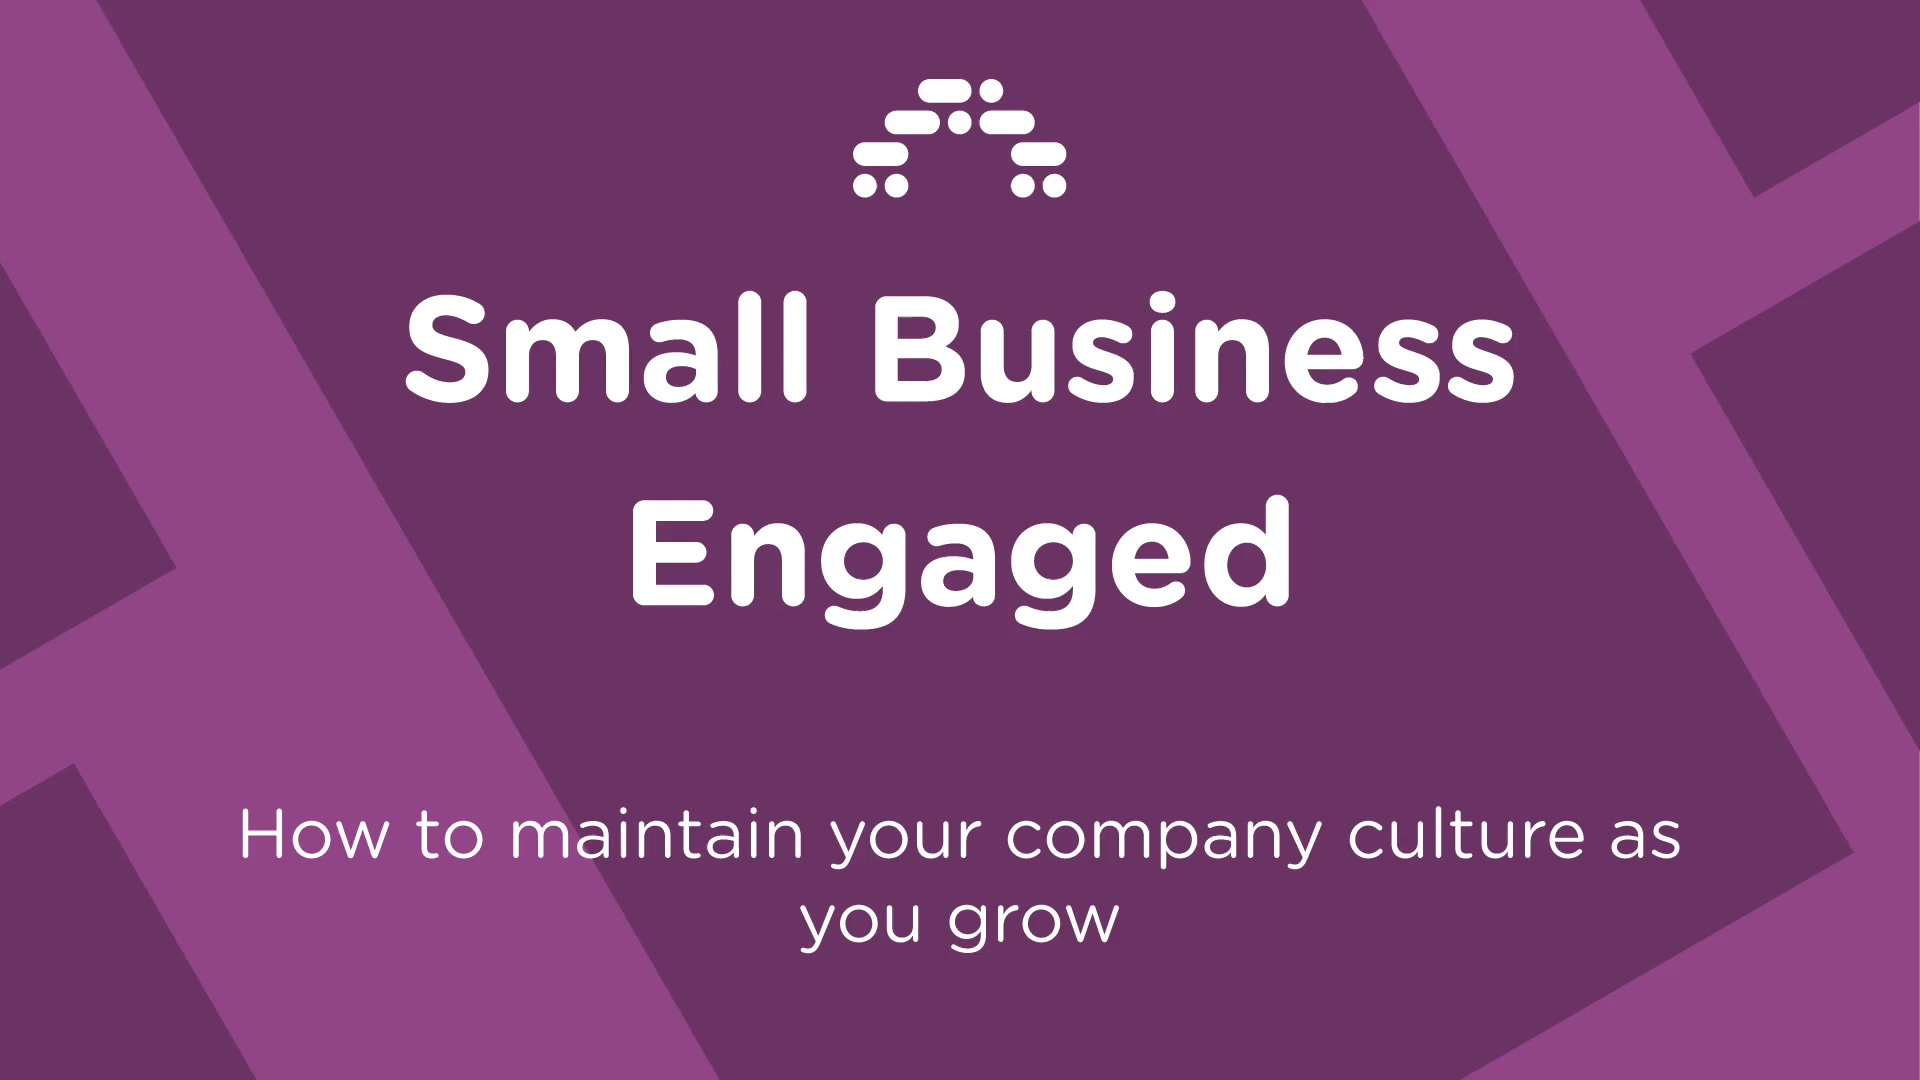 Small Business Engaged UK - Episode 3 - How to Maintain Your Company Culture as You Grow